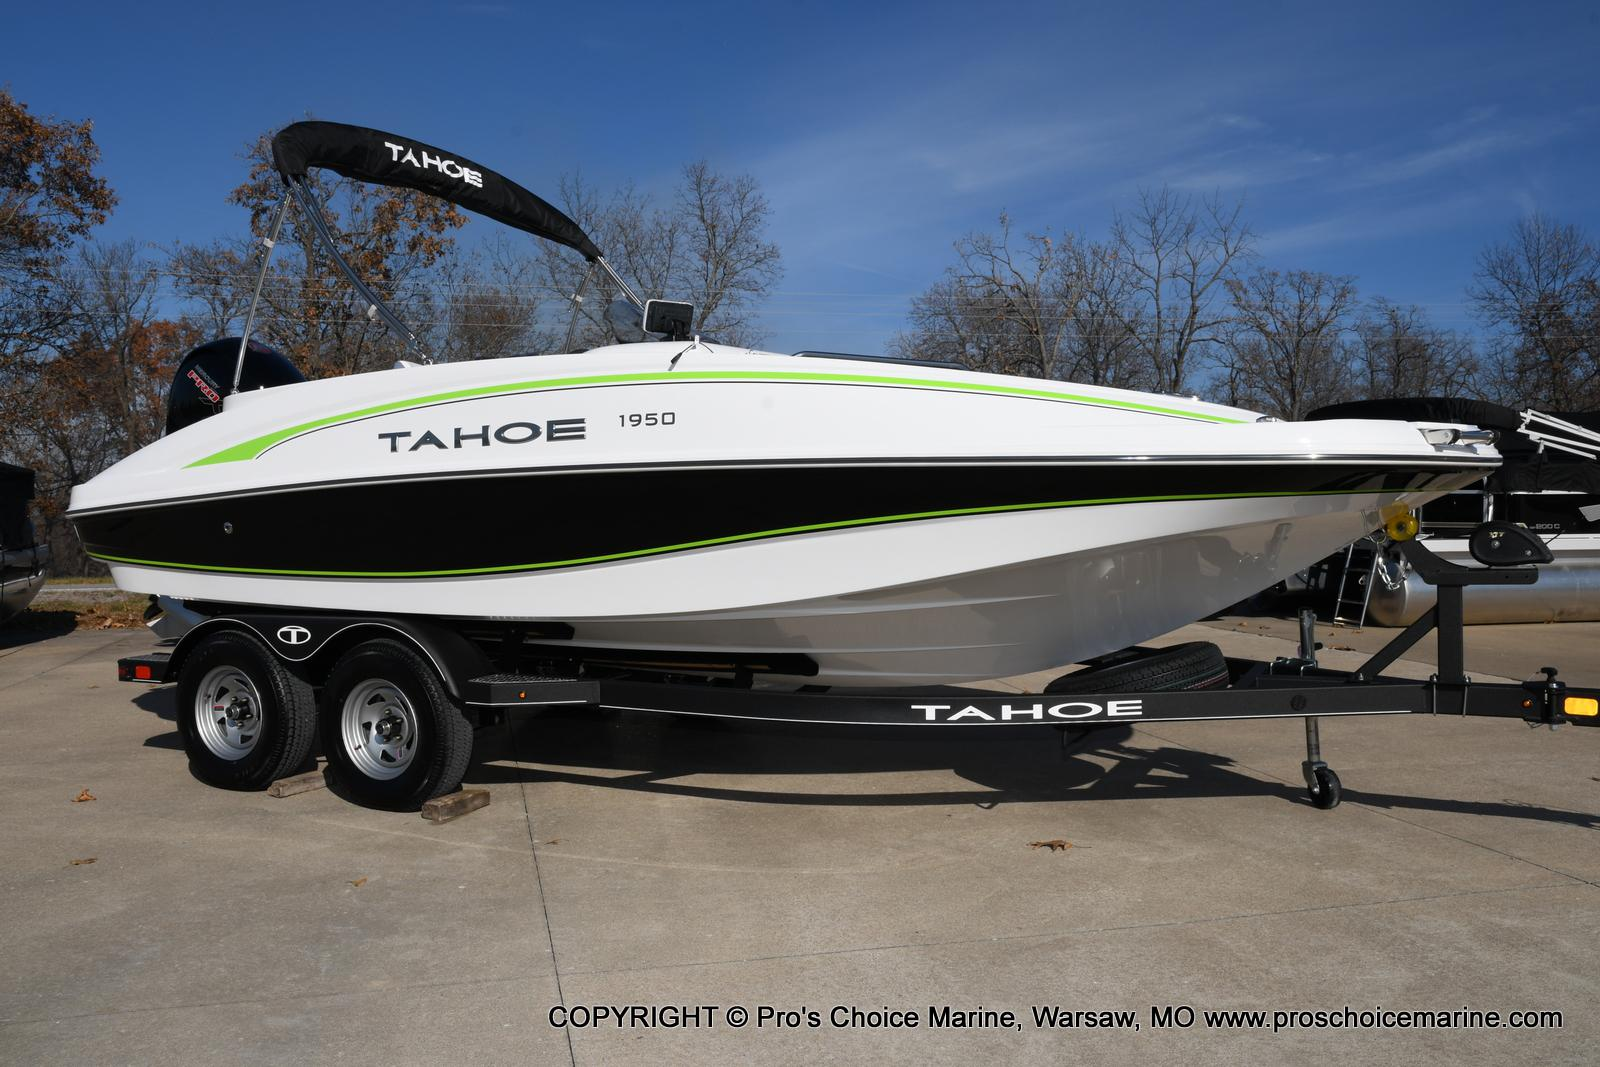 2020 Tahoe boat for sale, model of the boat is 1950 & Image # 41 of 50